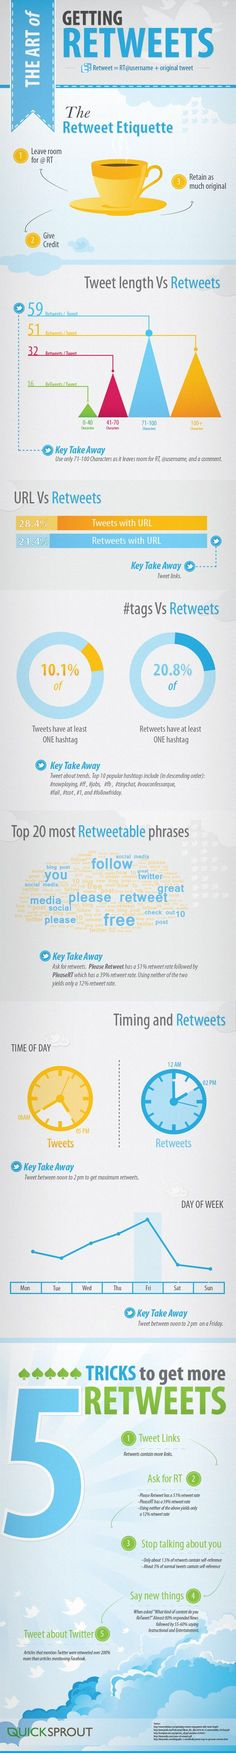 #retweet 101 and the art of getting retweets